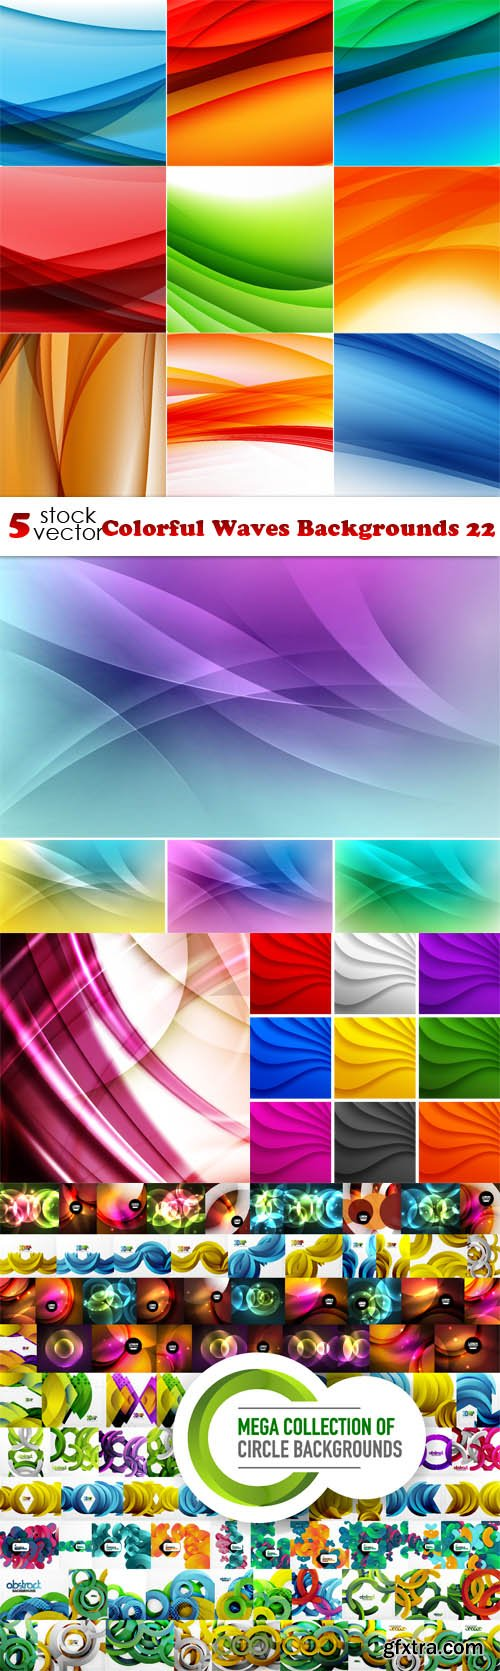 Vectors - Colorful Waves Backgrounds 22